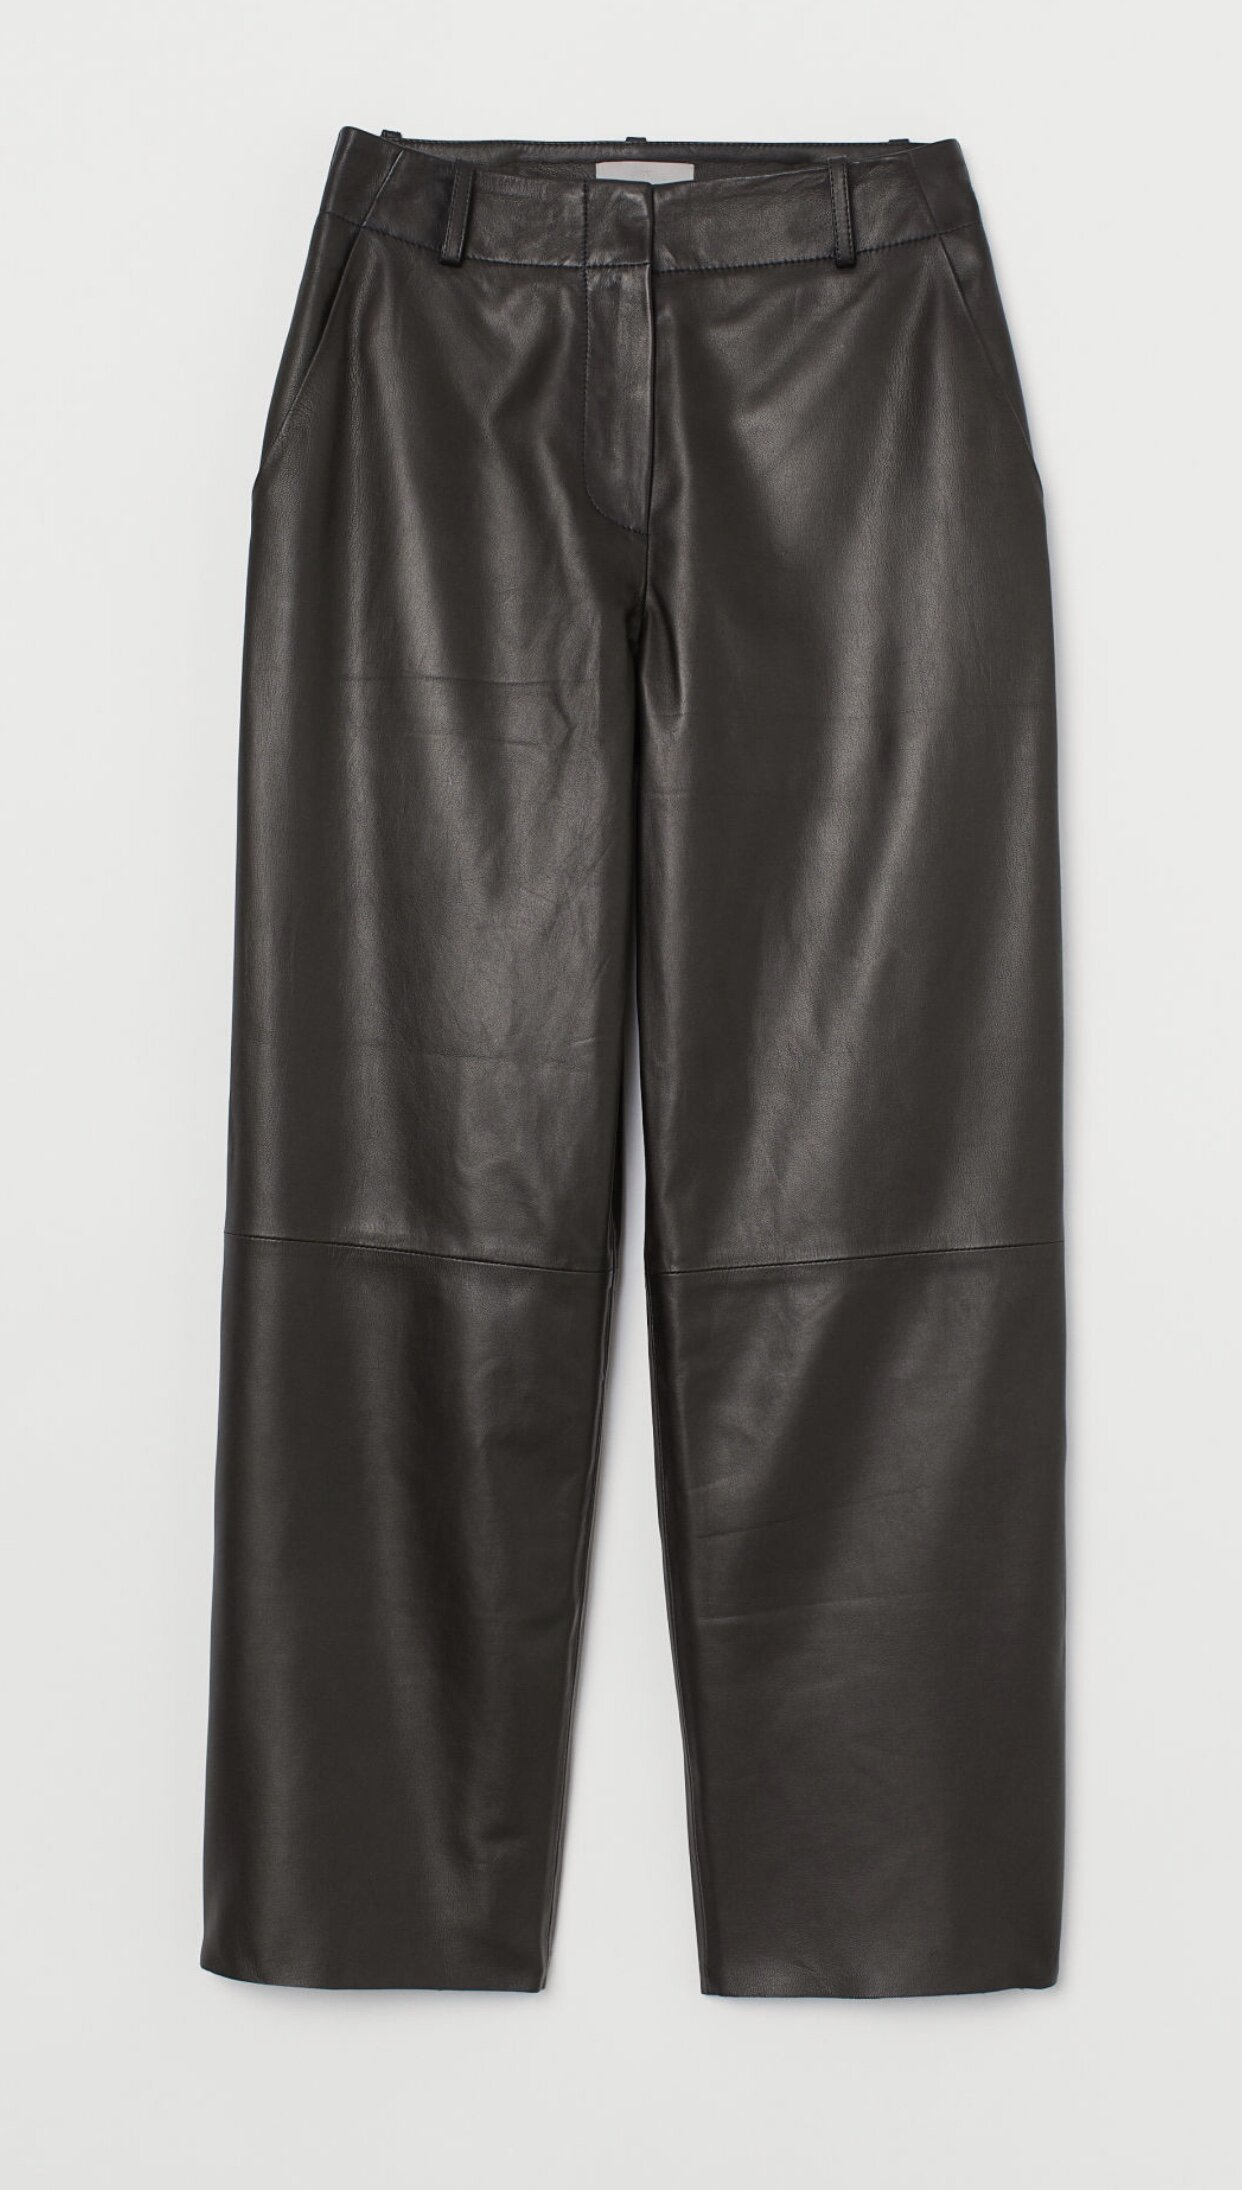 STRAIGHT LEATHER TROUSERS